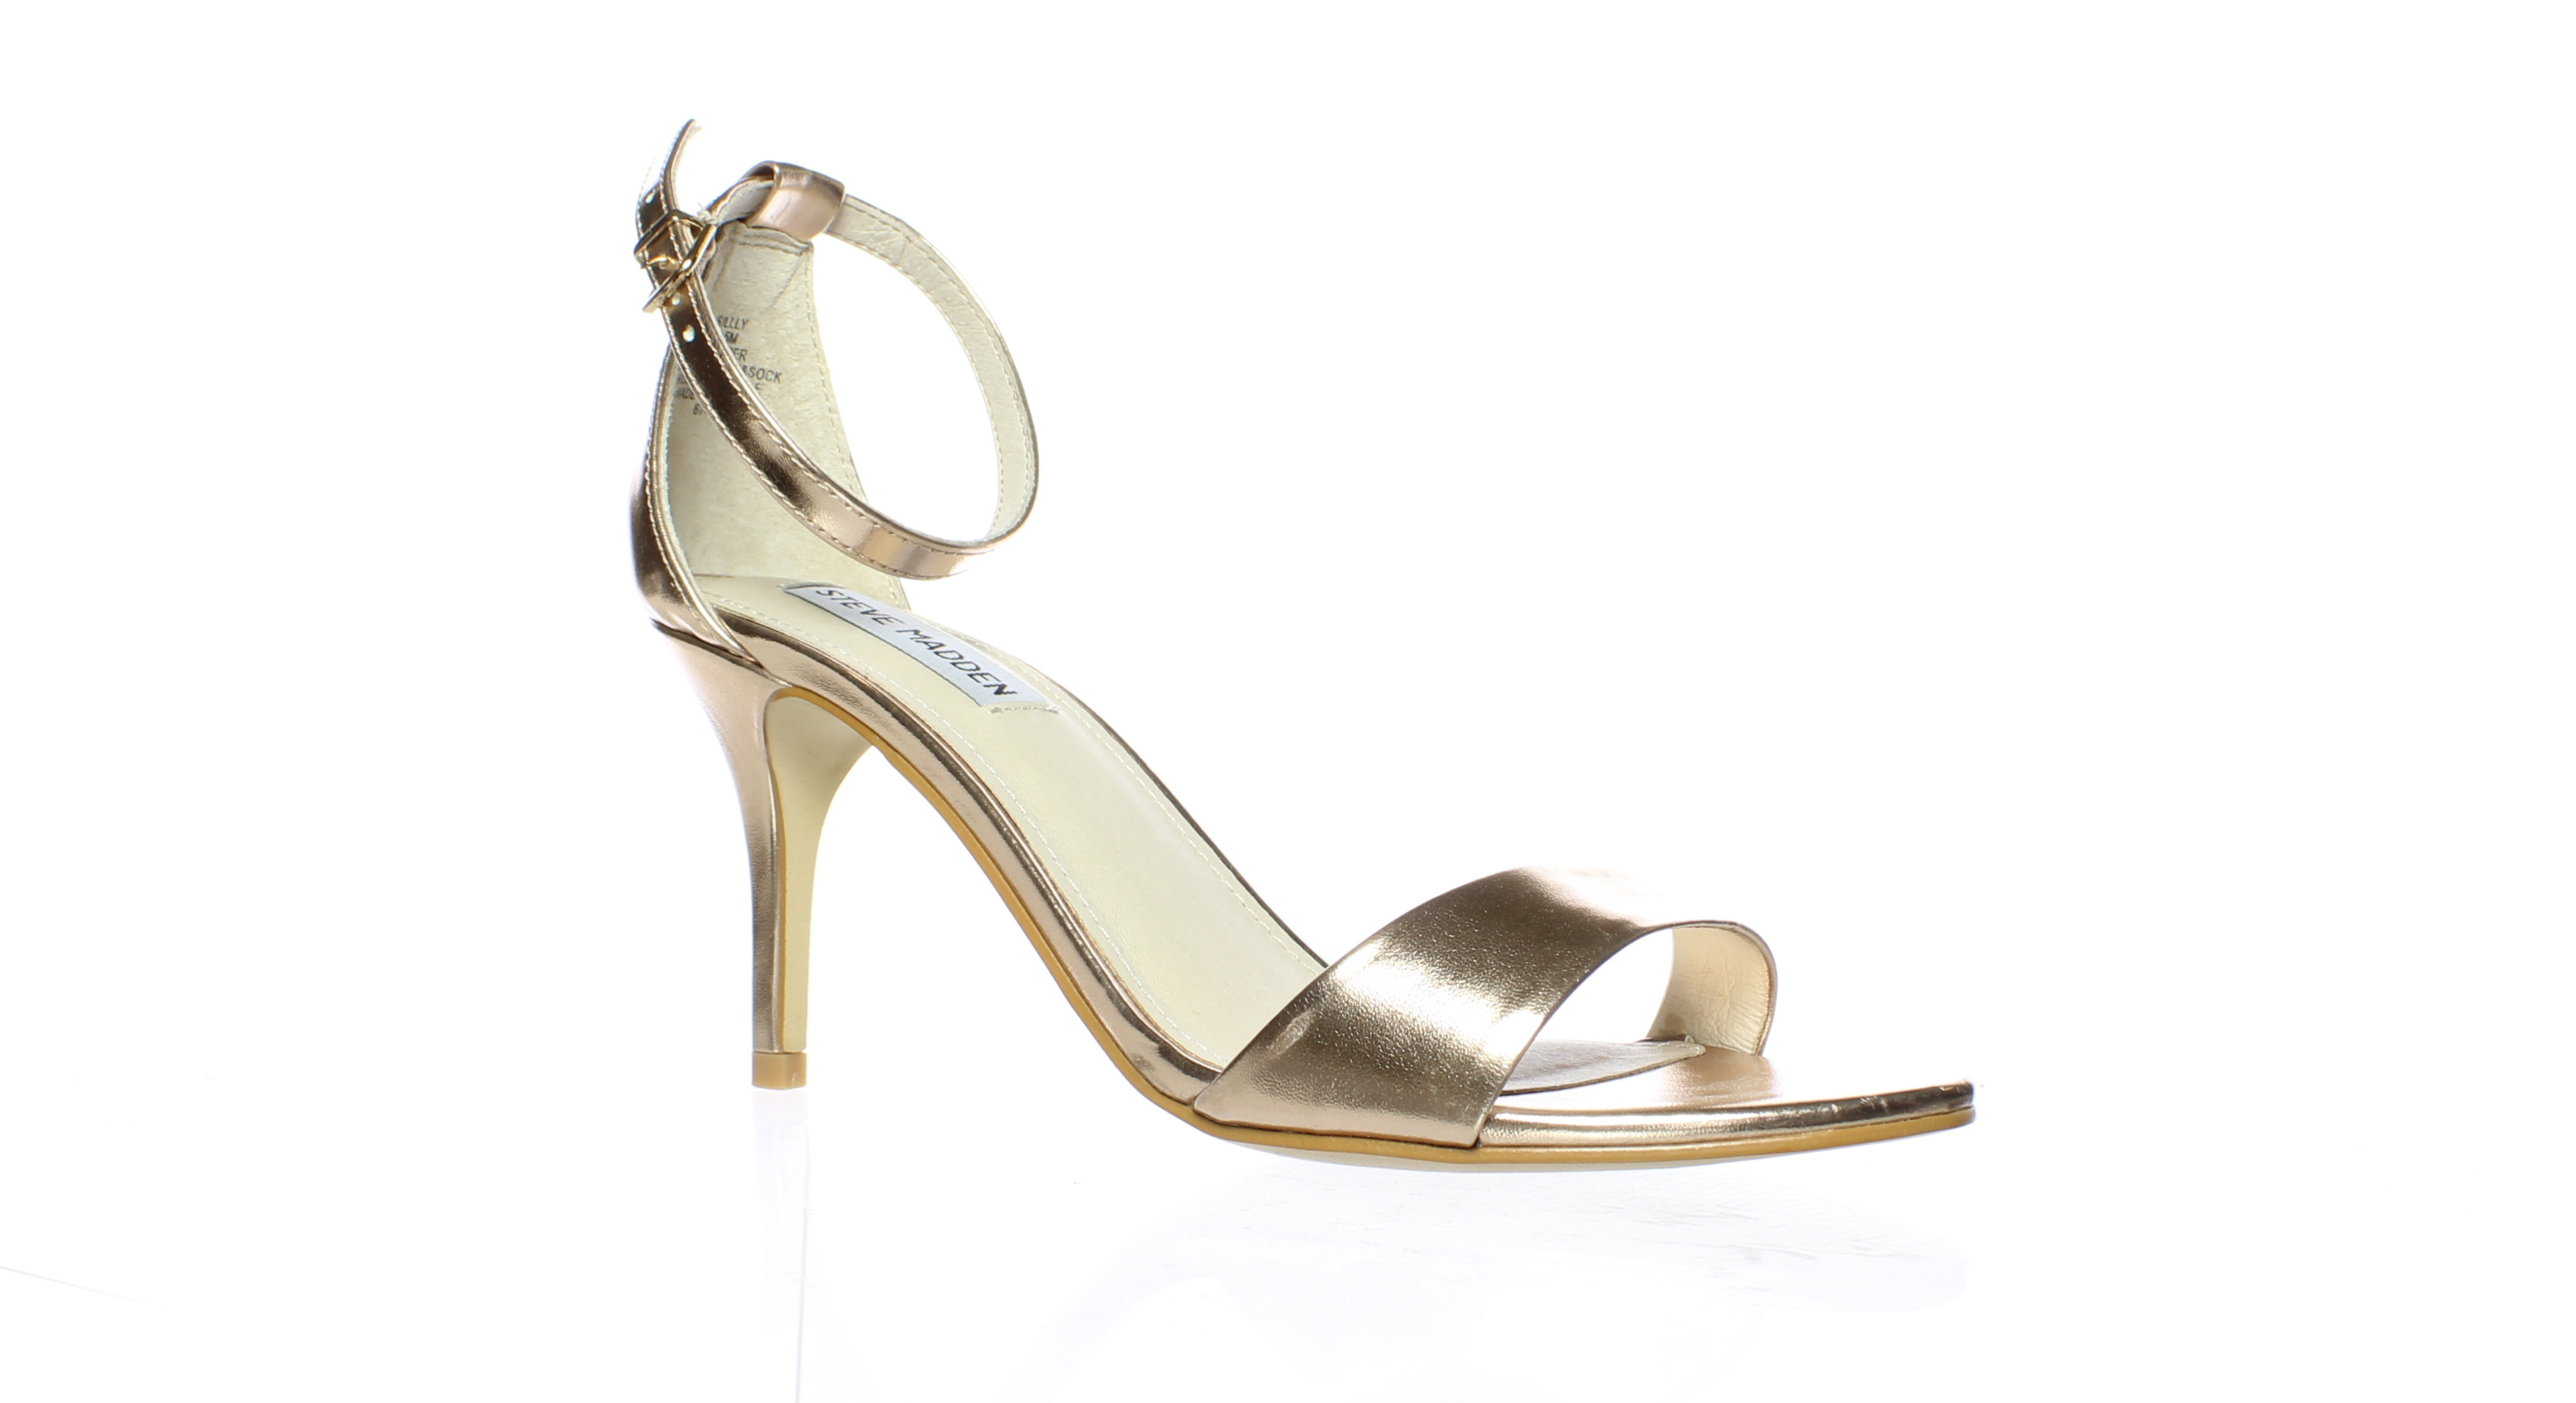 34705c6d20d Details about Steve Madden Womens Sillly Rose Gold Ankle Strap Heels Size  8.5 (214897)